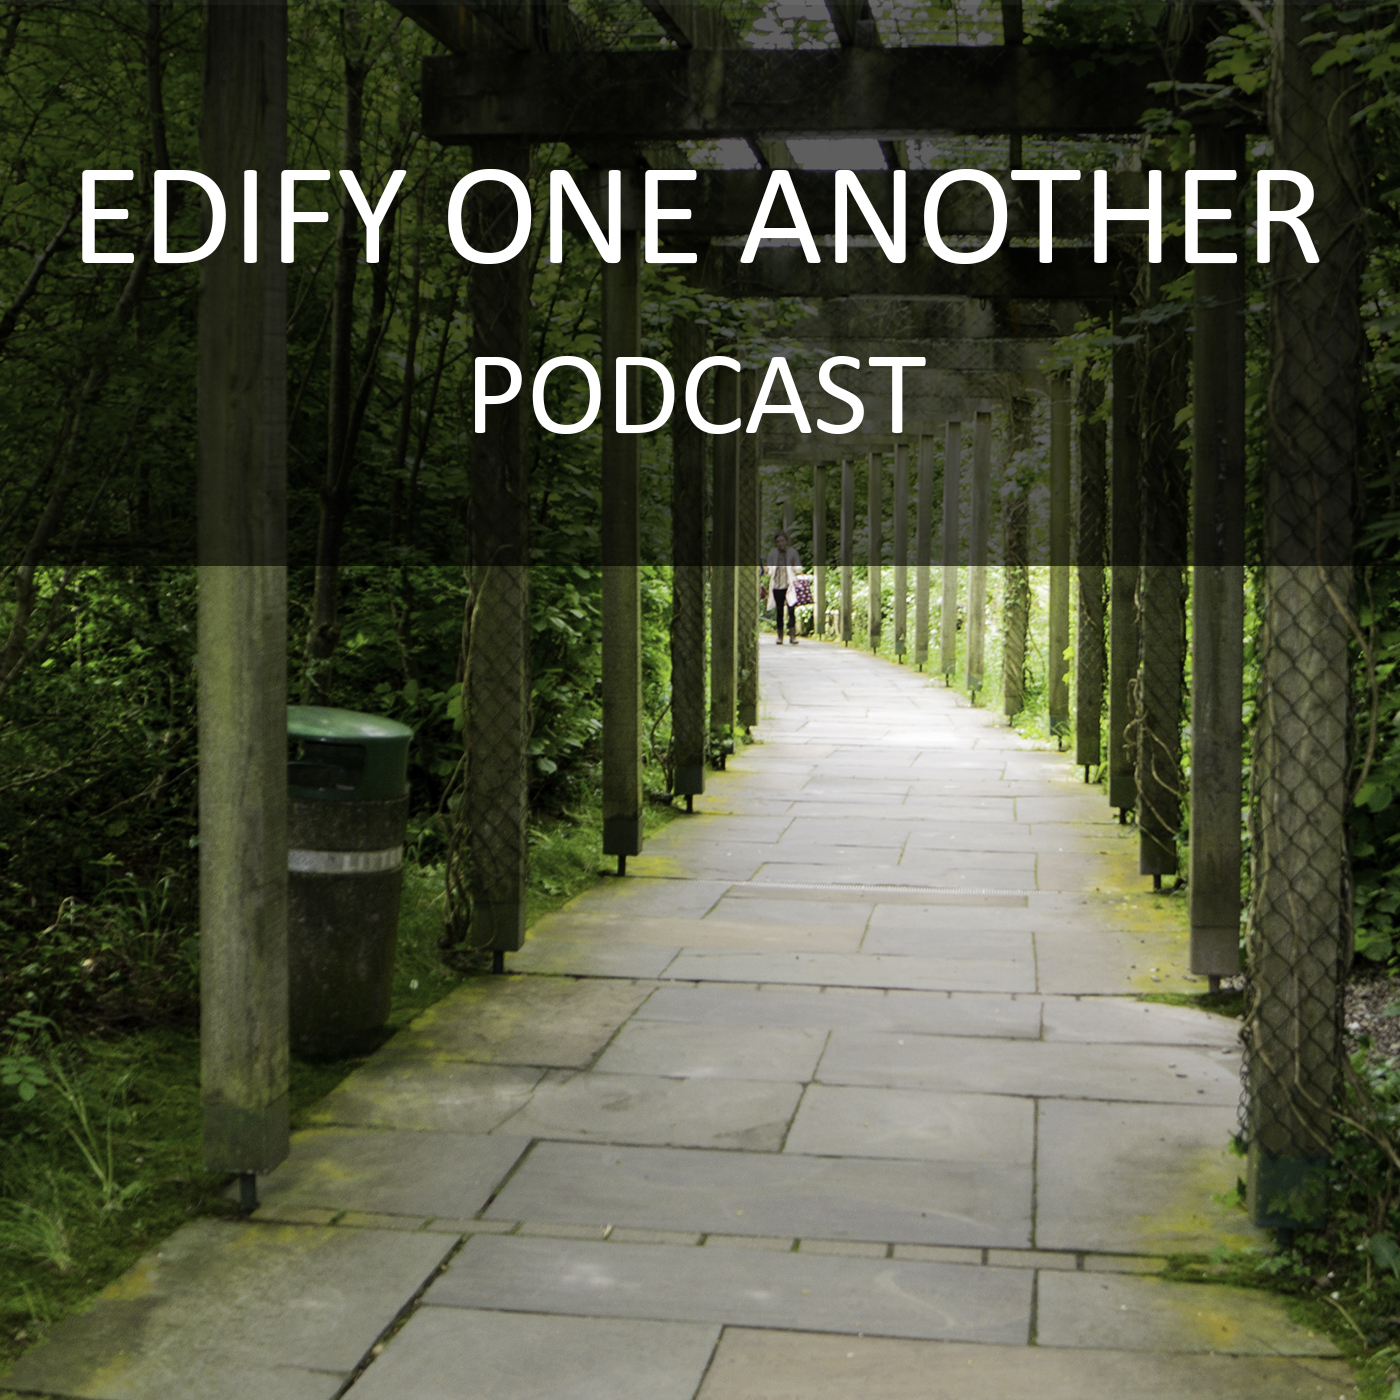 Edify One Another